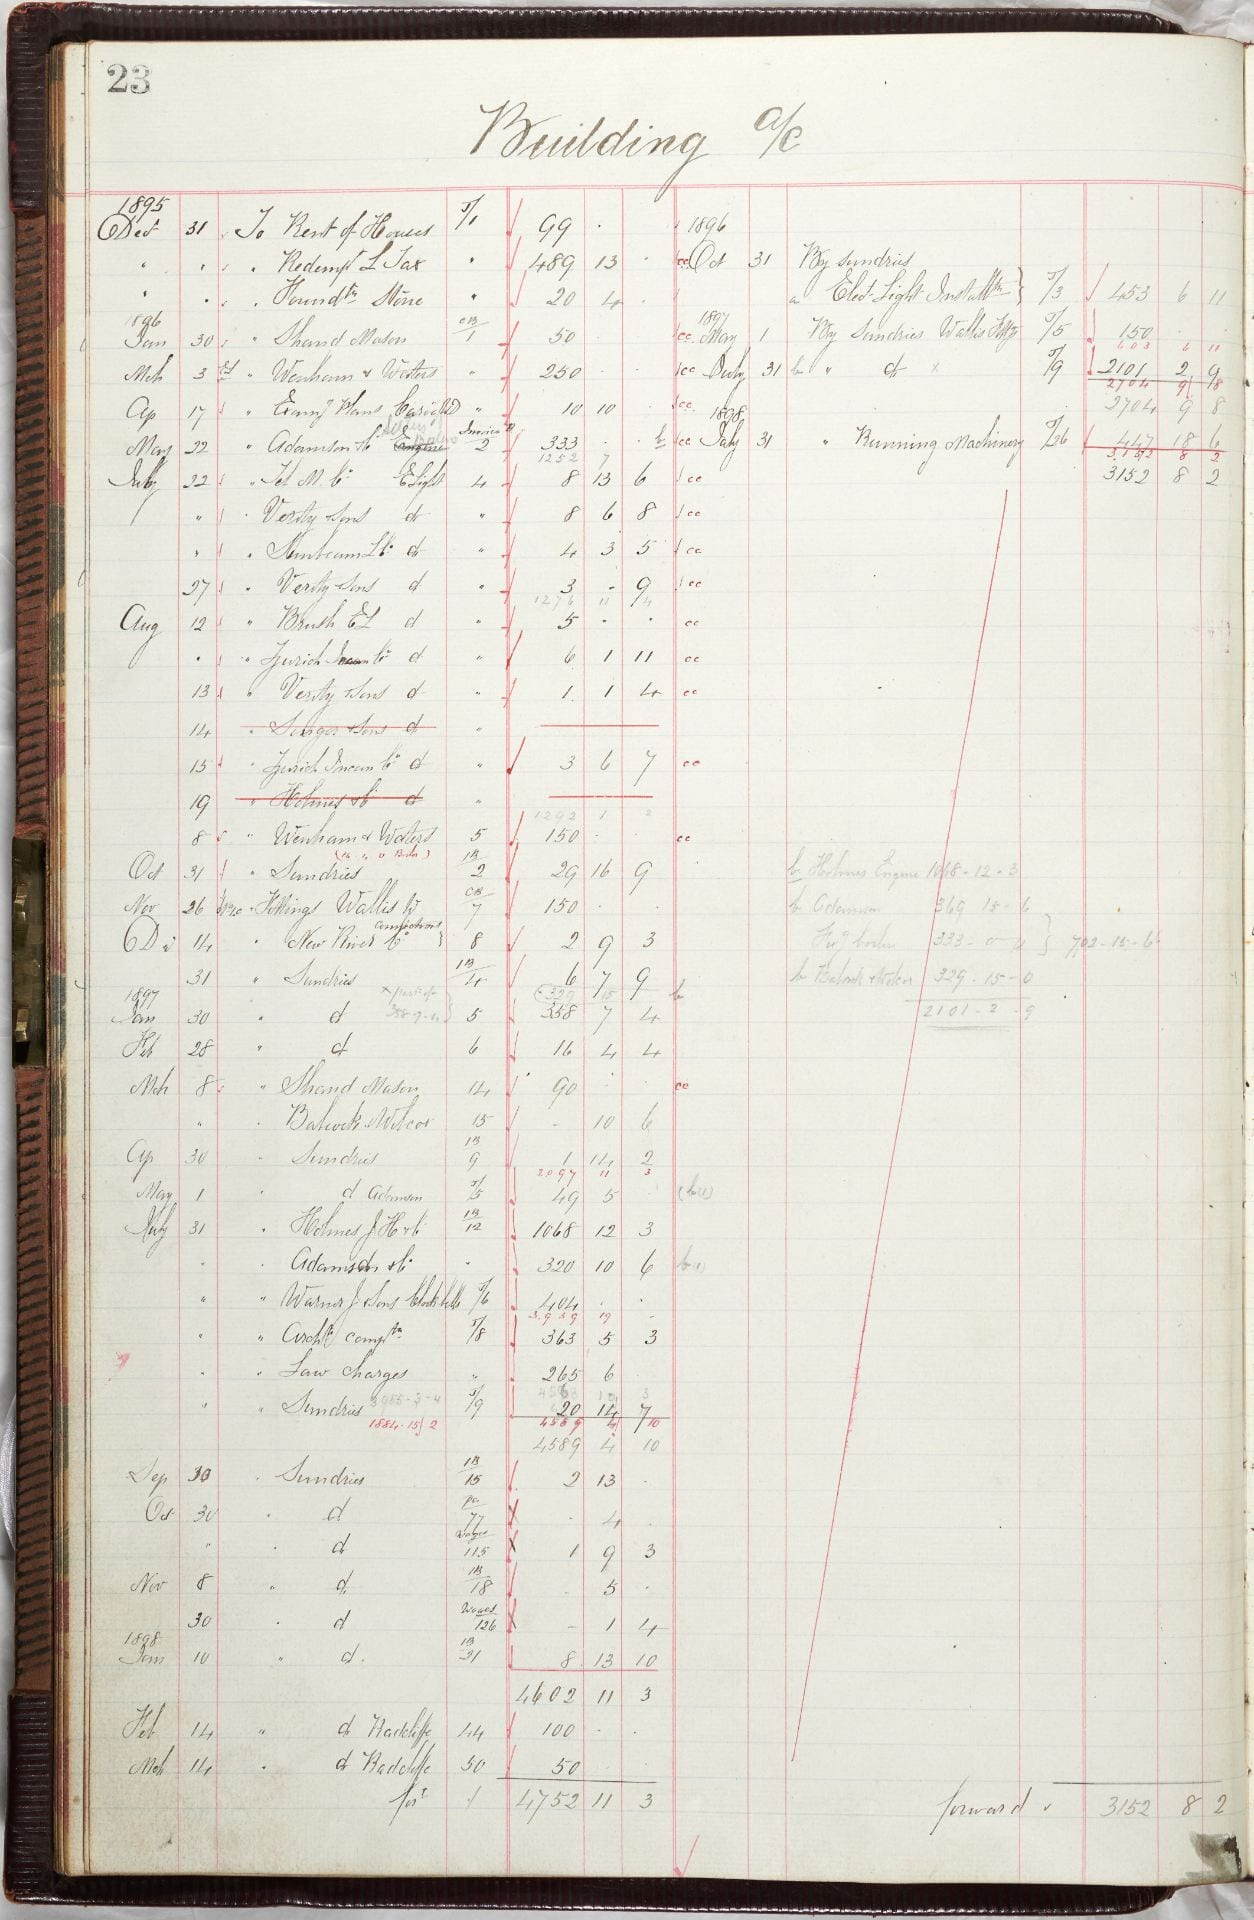 Financial ledger page 23 Building a/c. Costs arising from 1895.